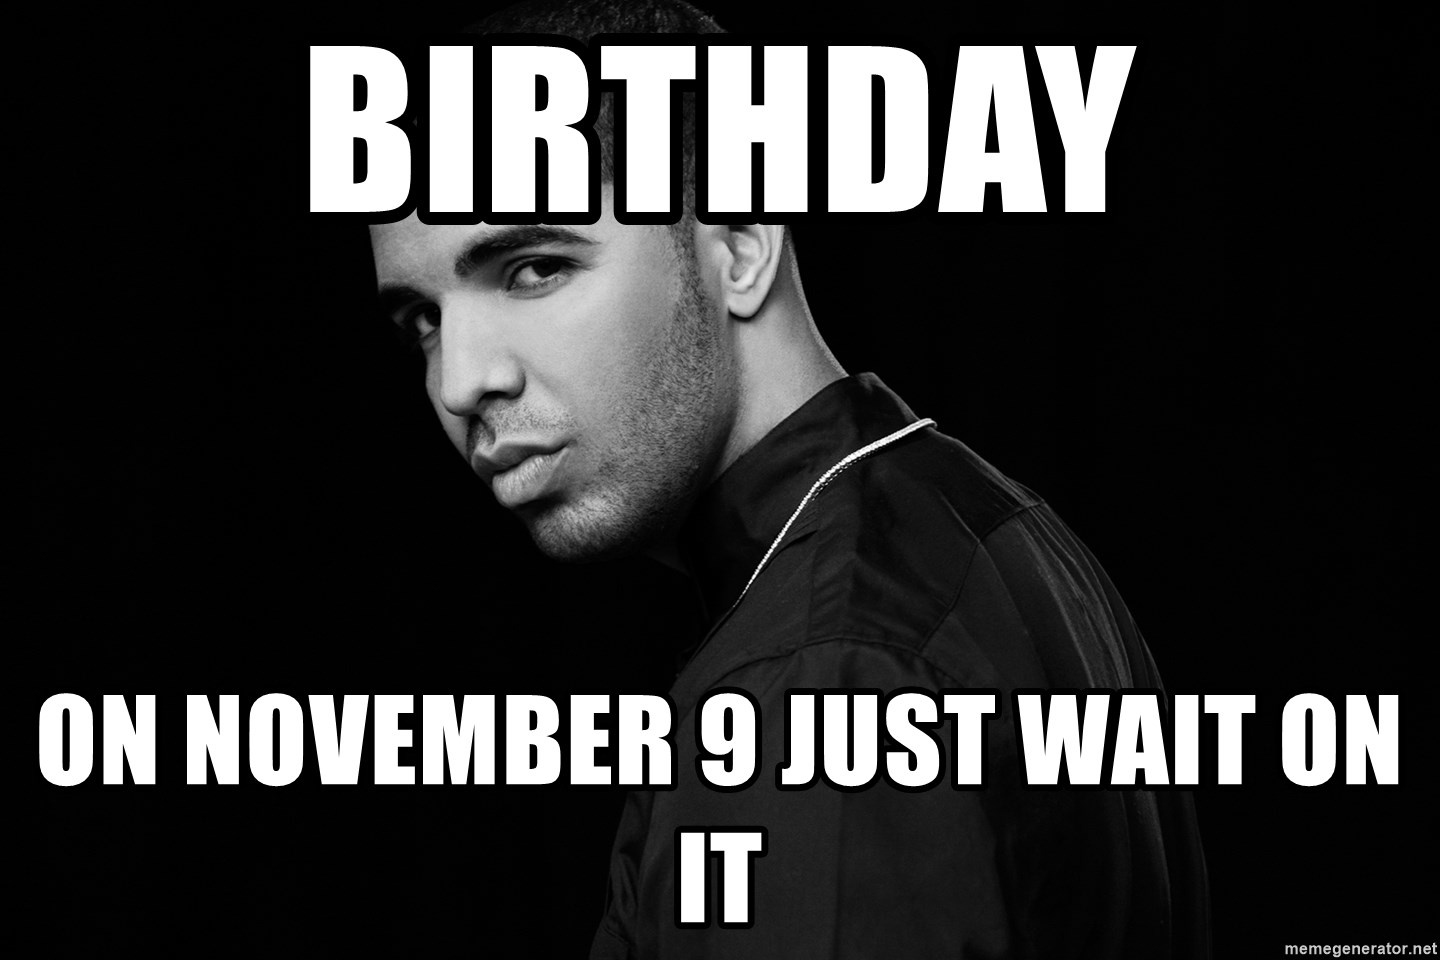 Birthday on November 9 Just wait on it - Drake quotes | Meme